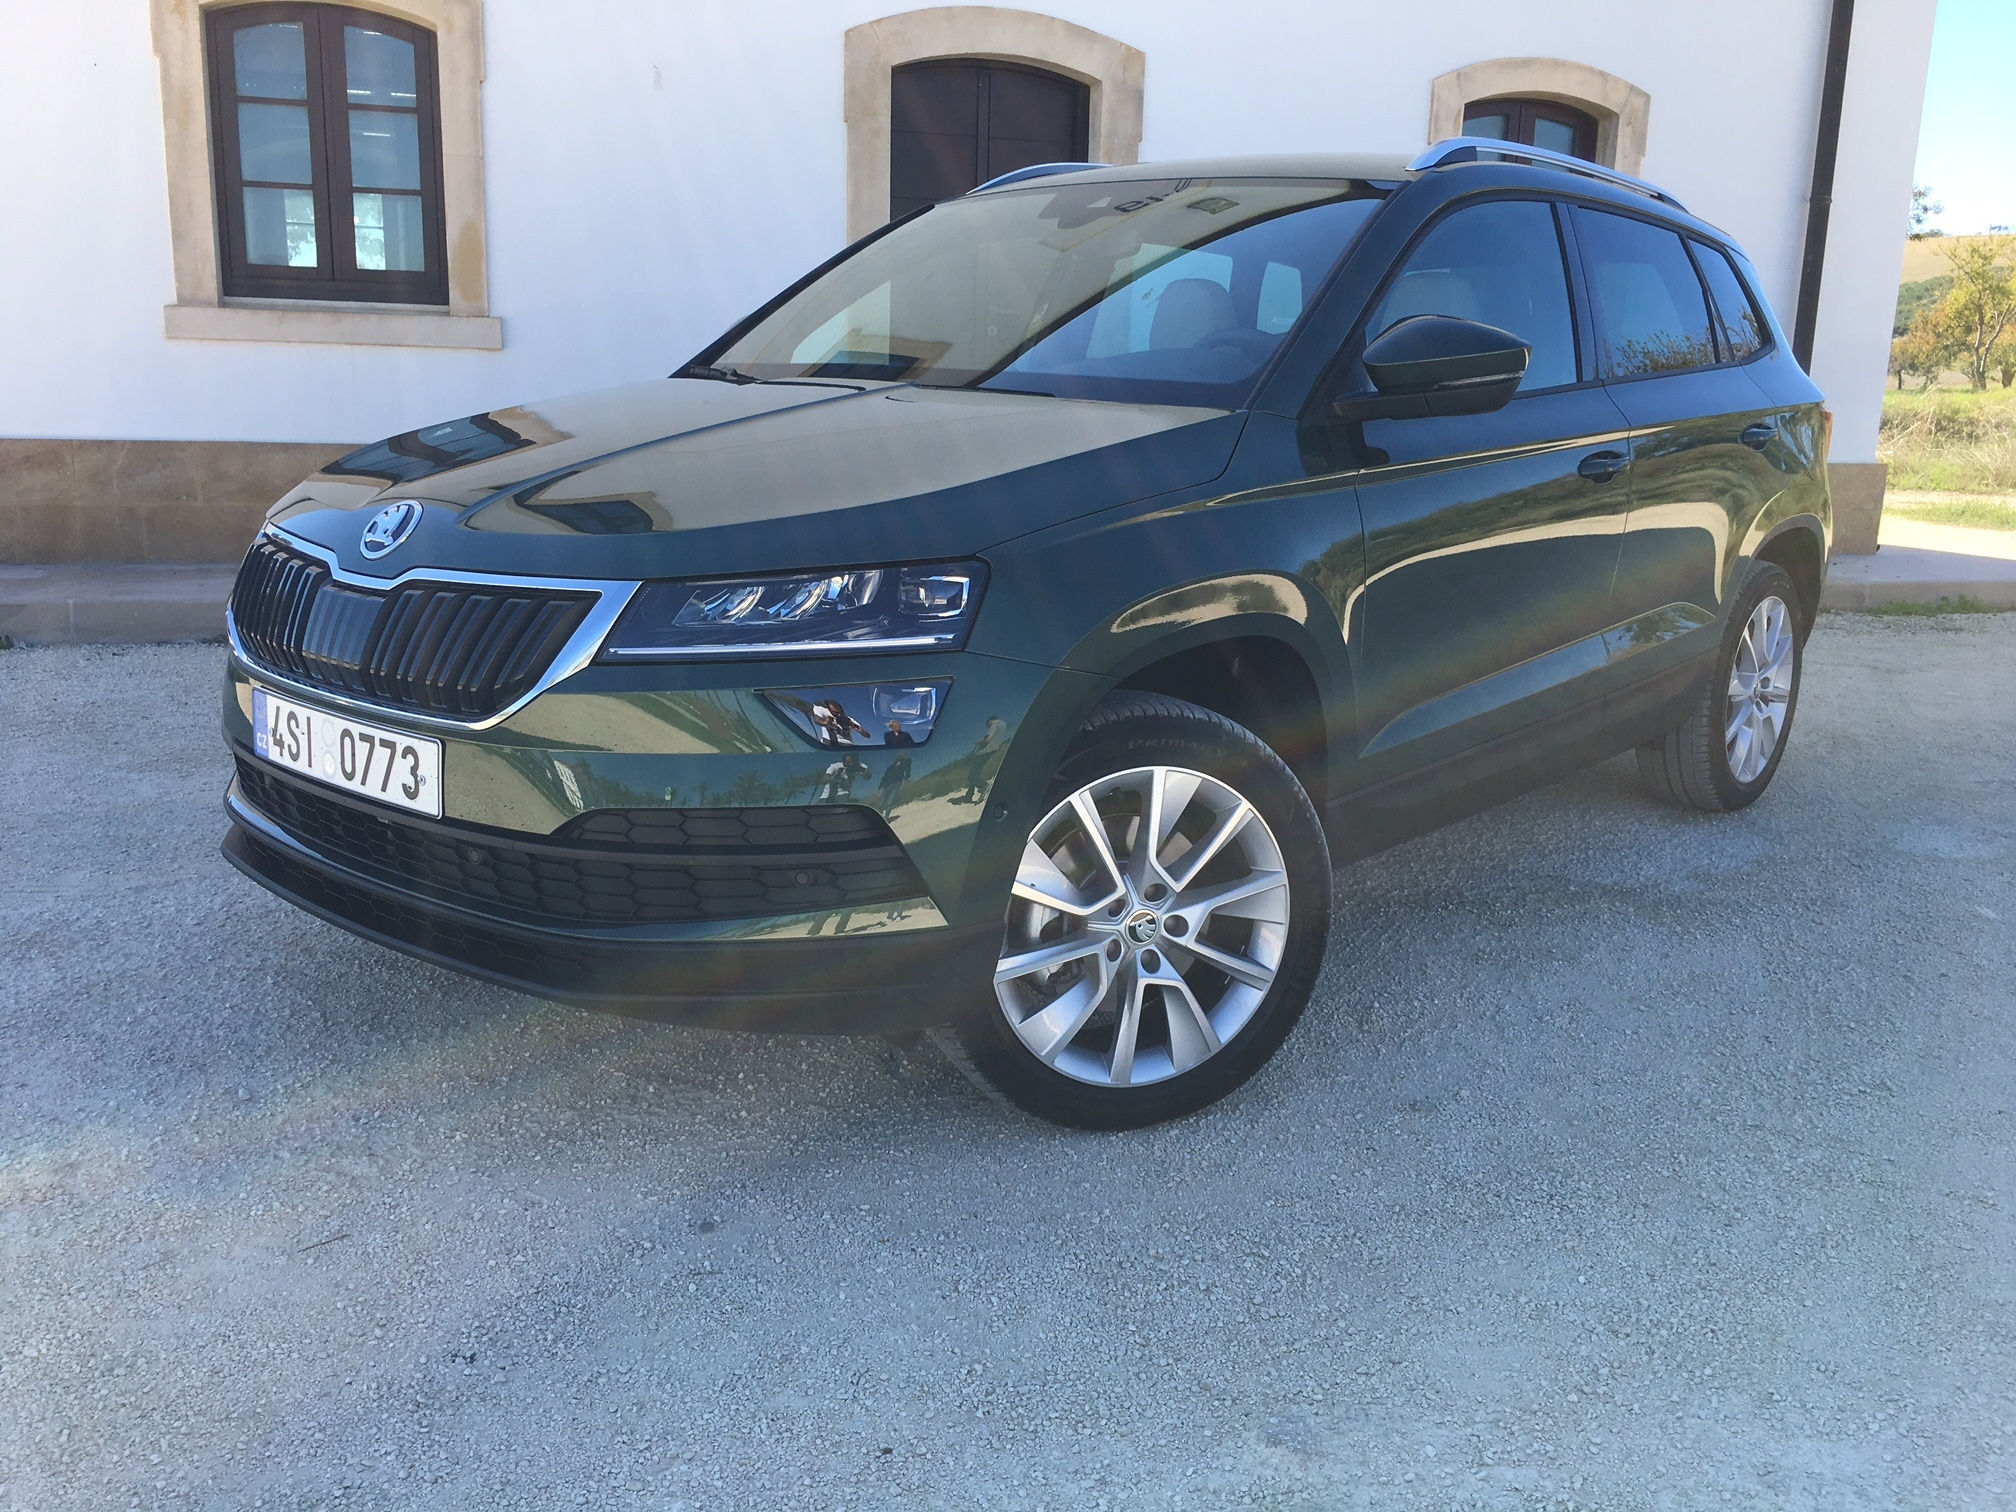 skoda karoq 2018 les premi res images de l 39 essai en live premi res impressions. Black Bedroom Furniture Sets. Home Design Ideas